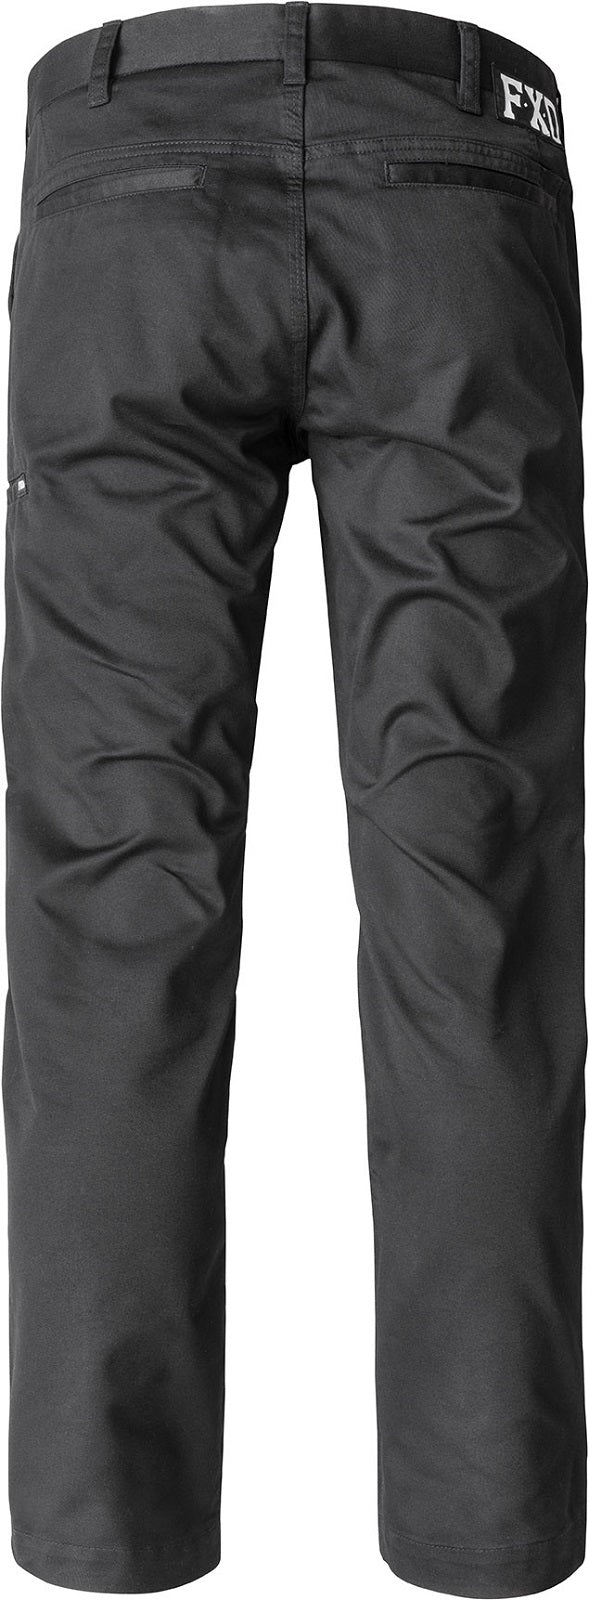 FXD WP-A Work Pant Auto